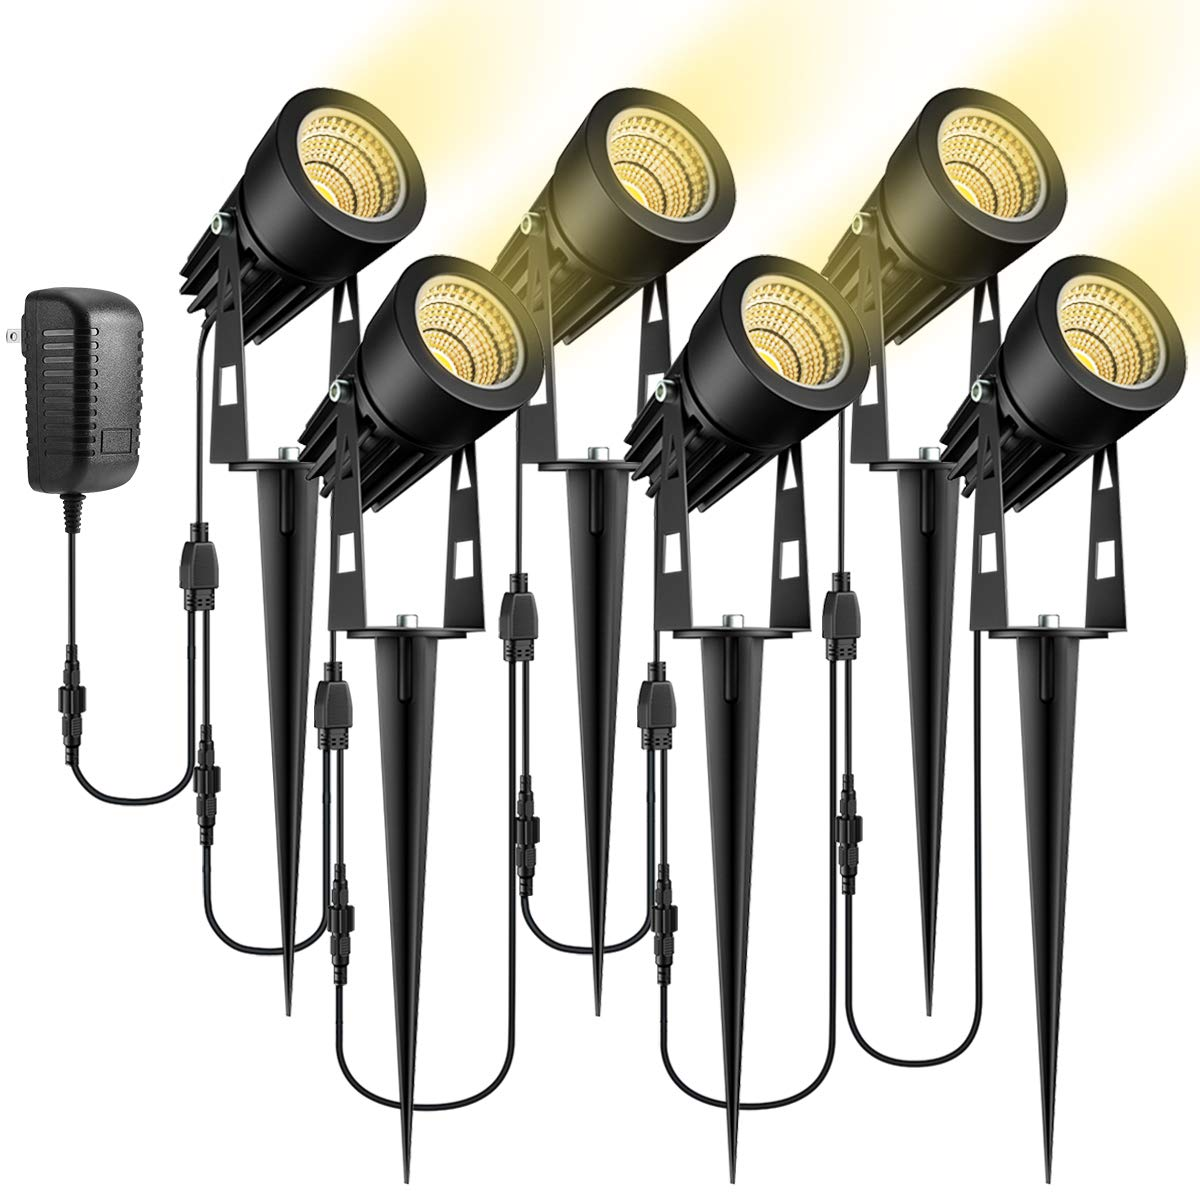 ALOVECO Landscape Lighting, 12V LED Low Voltage Landscape Lights Plug in Waterproof Outdoor Spotlight, Warm White Garden Lights for Patio Walls Trees Pathway Swimming Pool (6 Pack)